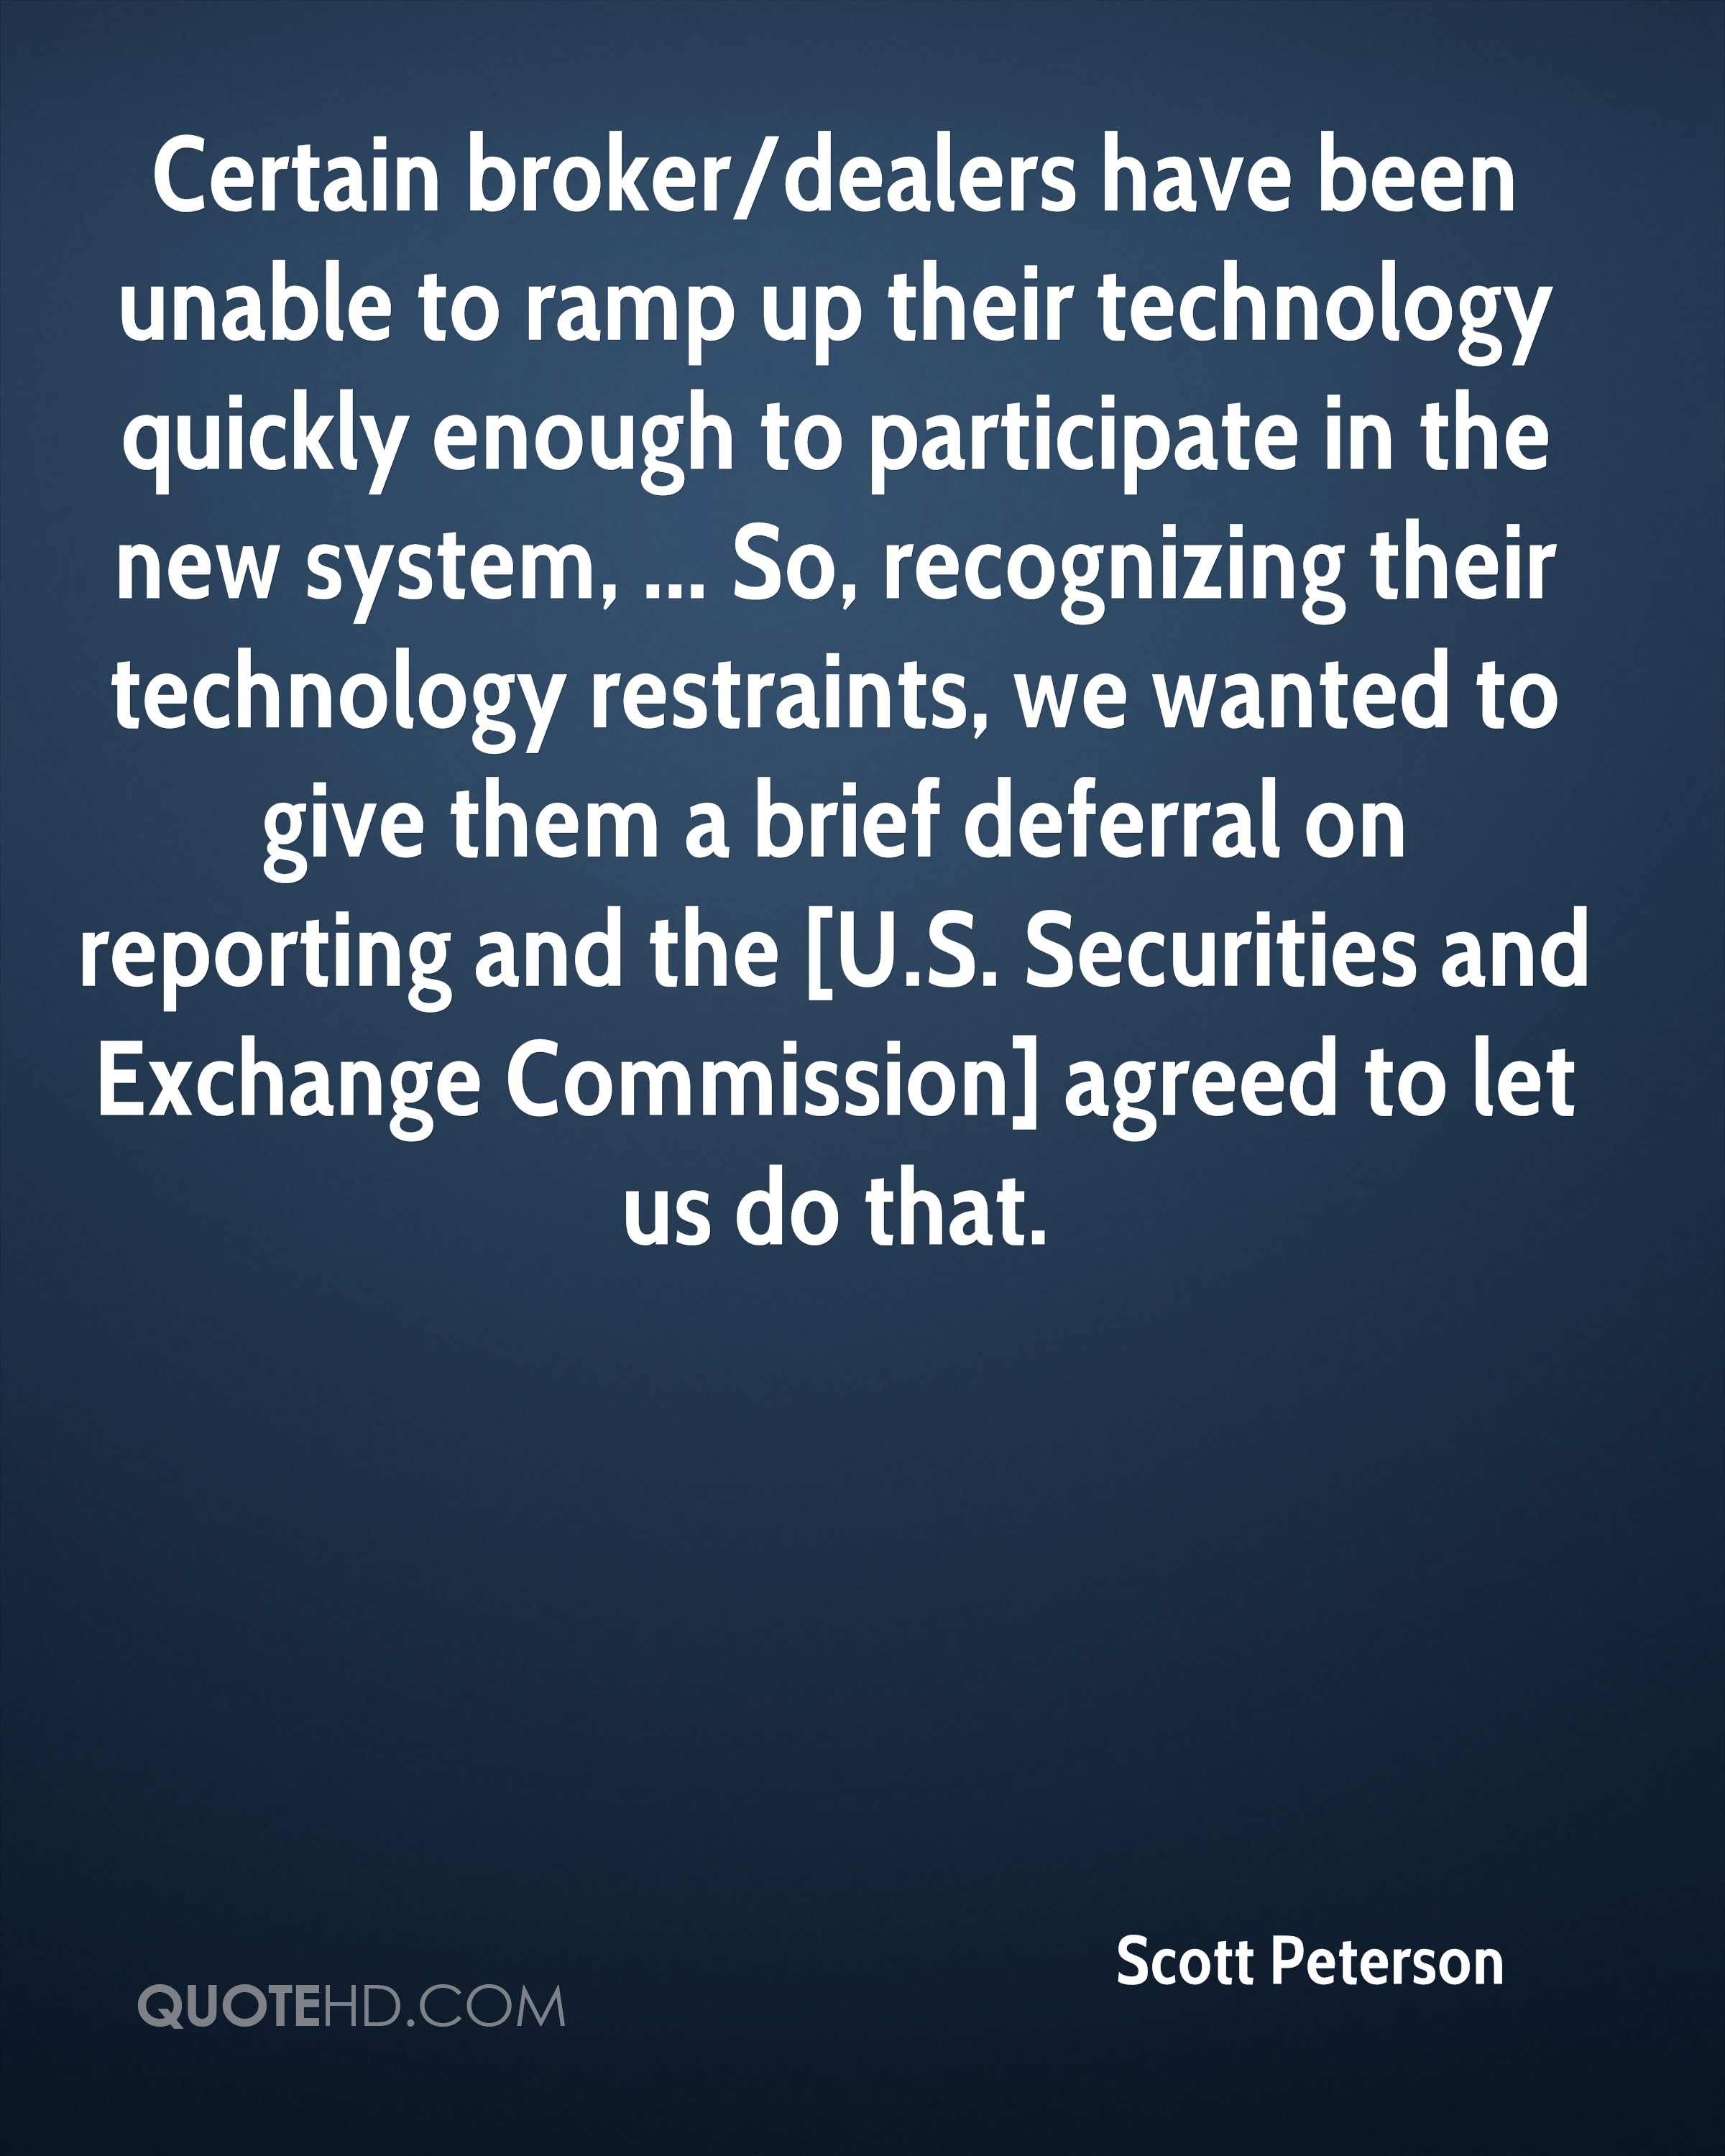 Certain broker/dealers have been unable to ramp up their technology quickly enough to participate in the new system, ... So, recognizing their technology restraints, we wanted to give them a brief deferral on reporting and the [U.S. Securities and Exchange Commission] agreed to let us do that.